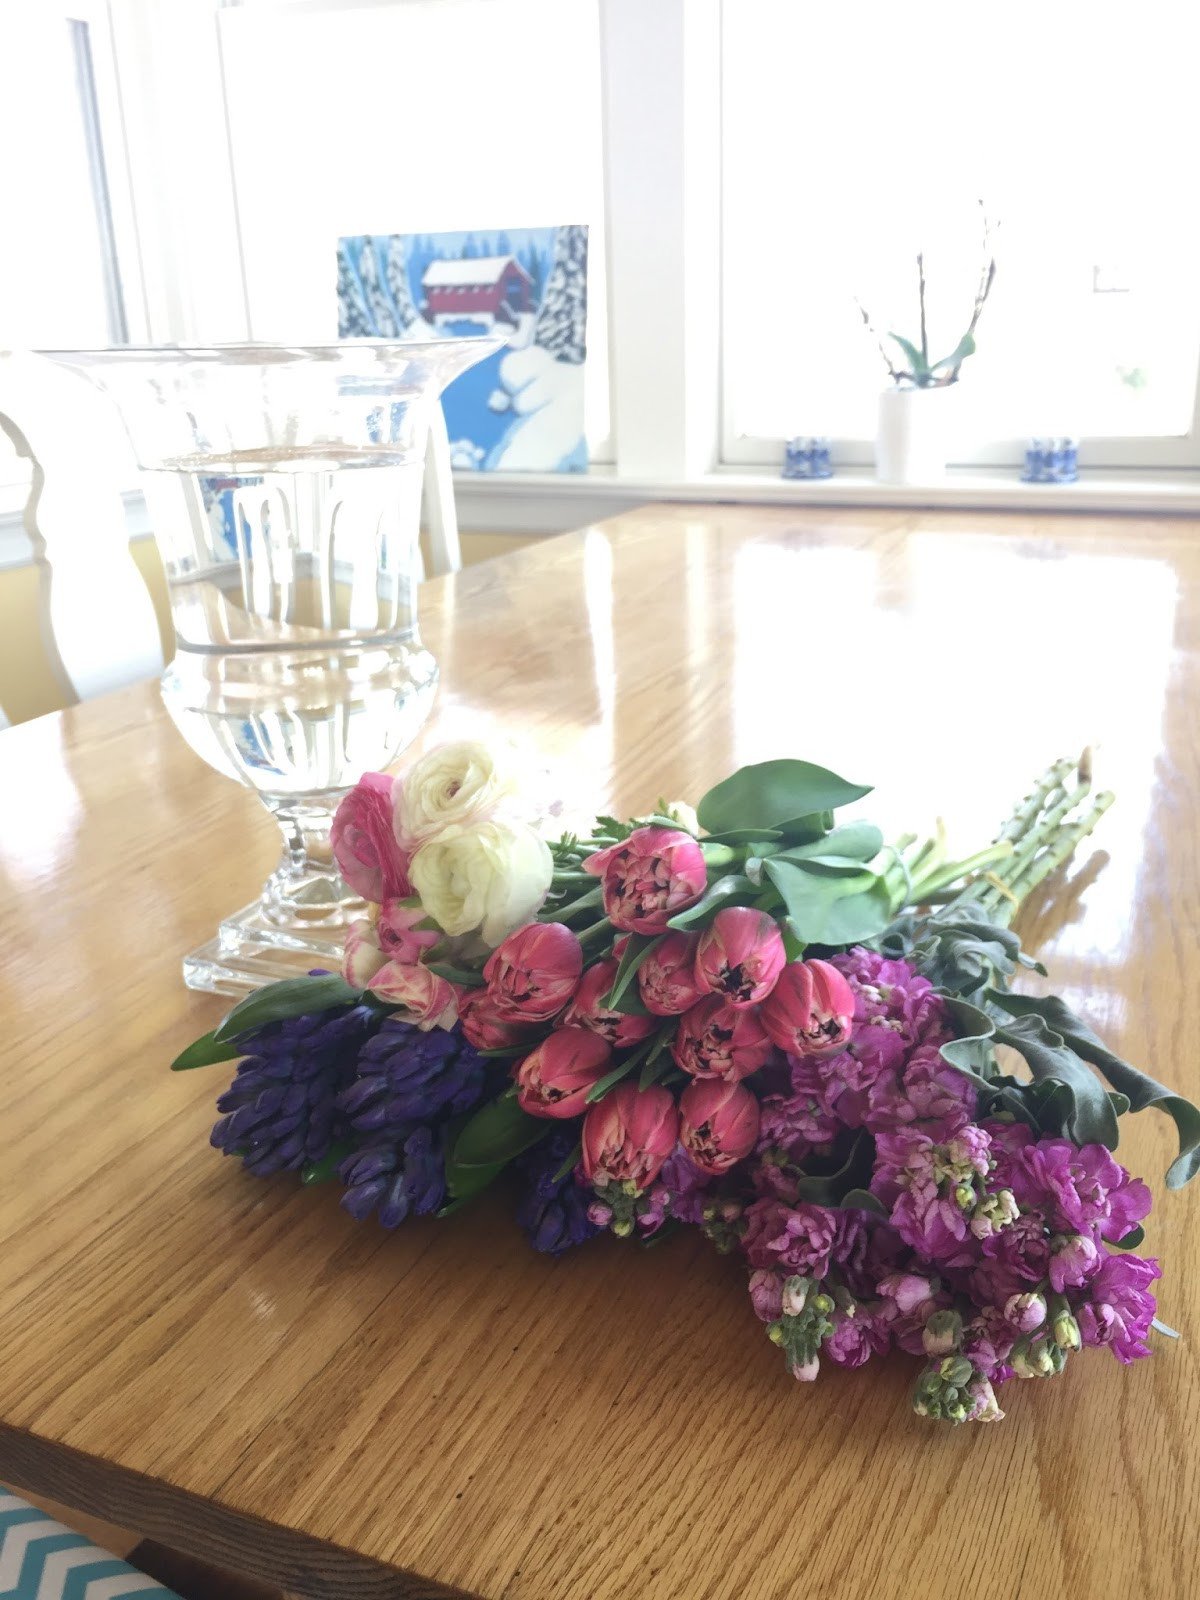 christian tortu vase of bloomingblog april 2017 inside with my medici vase that i had from when i did a master flower arranging class with the magnifique french floral phenom christian tortu you can read about